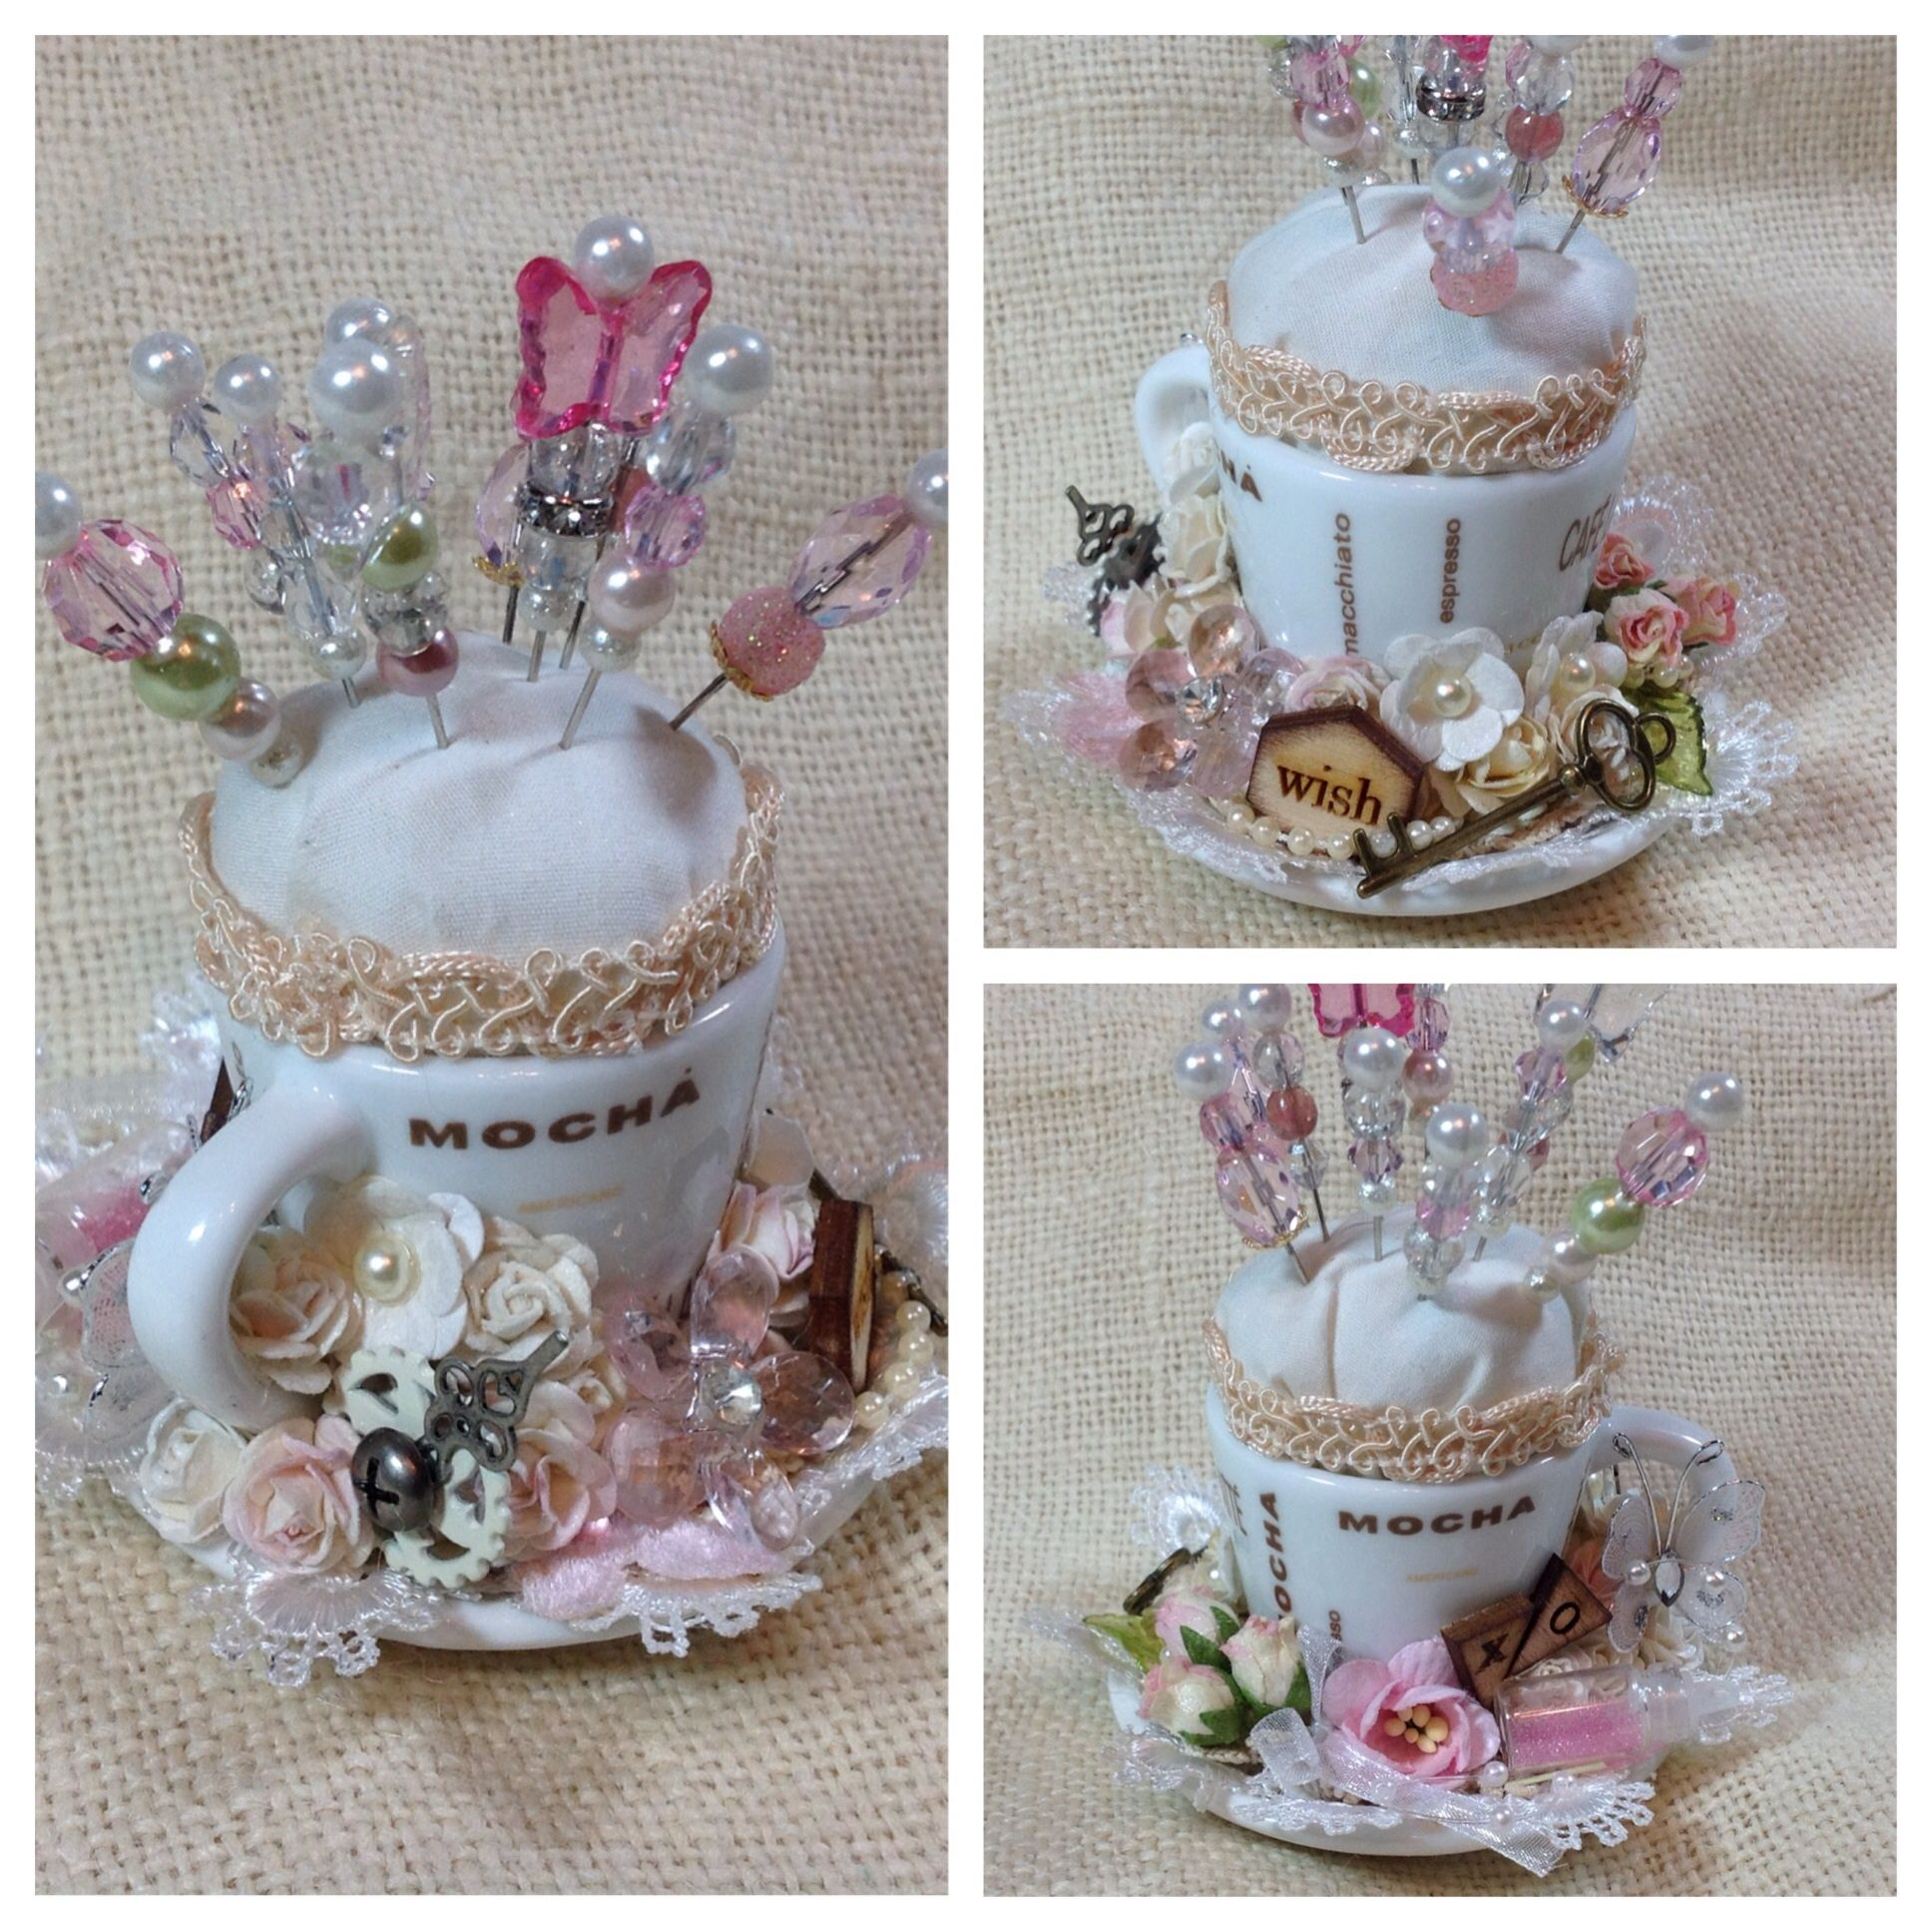 Shabby Chic Pin Cushion using miniature teacup/saucer ...